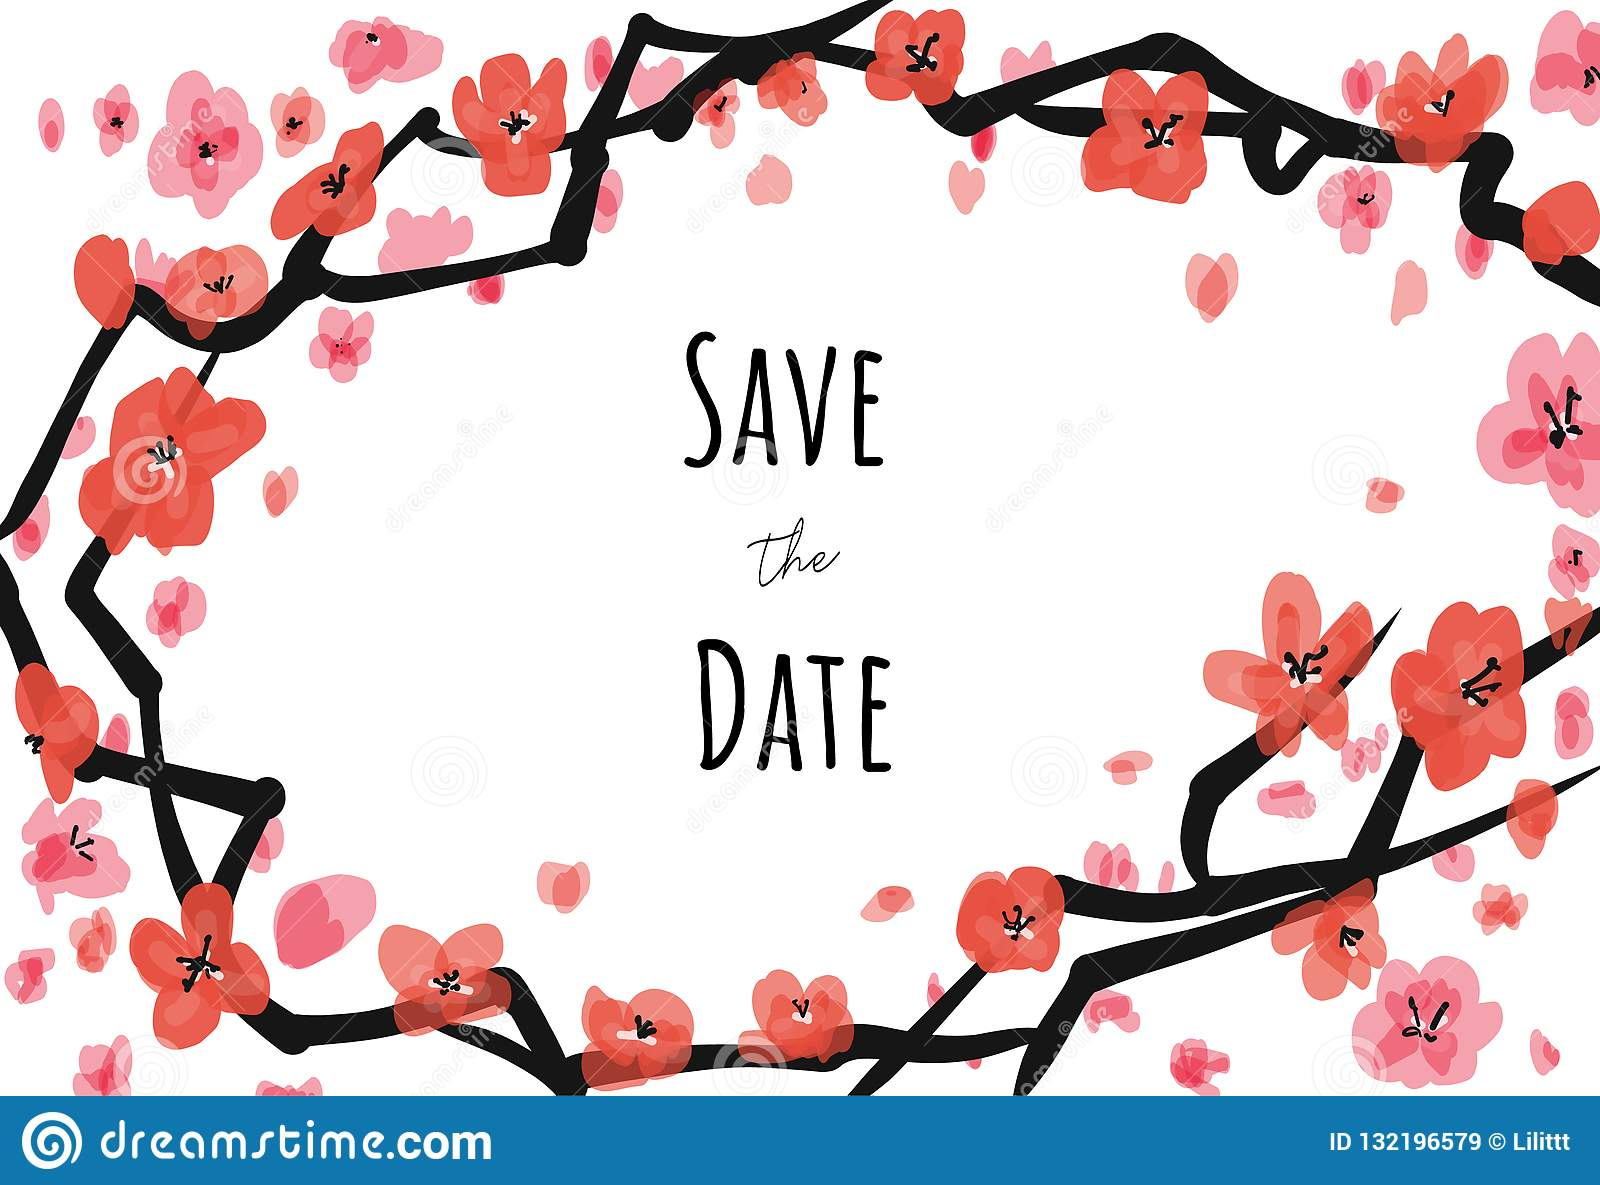 Vector invite card sacura on white background with Save the date caption. For weddings, greetings, invitations